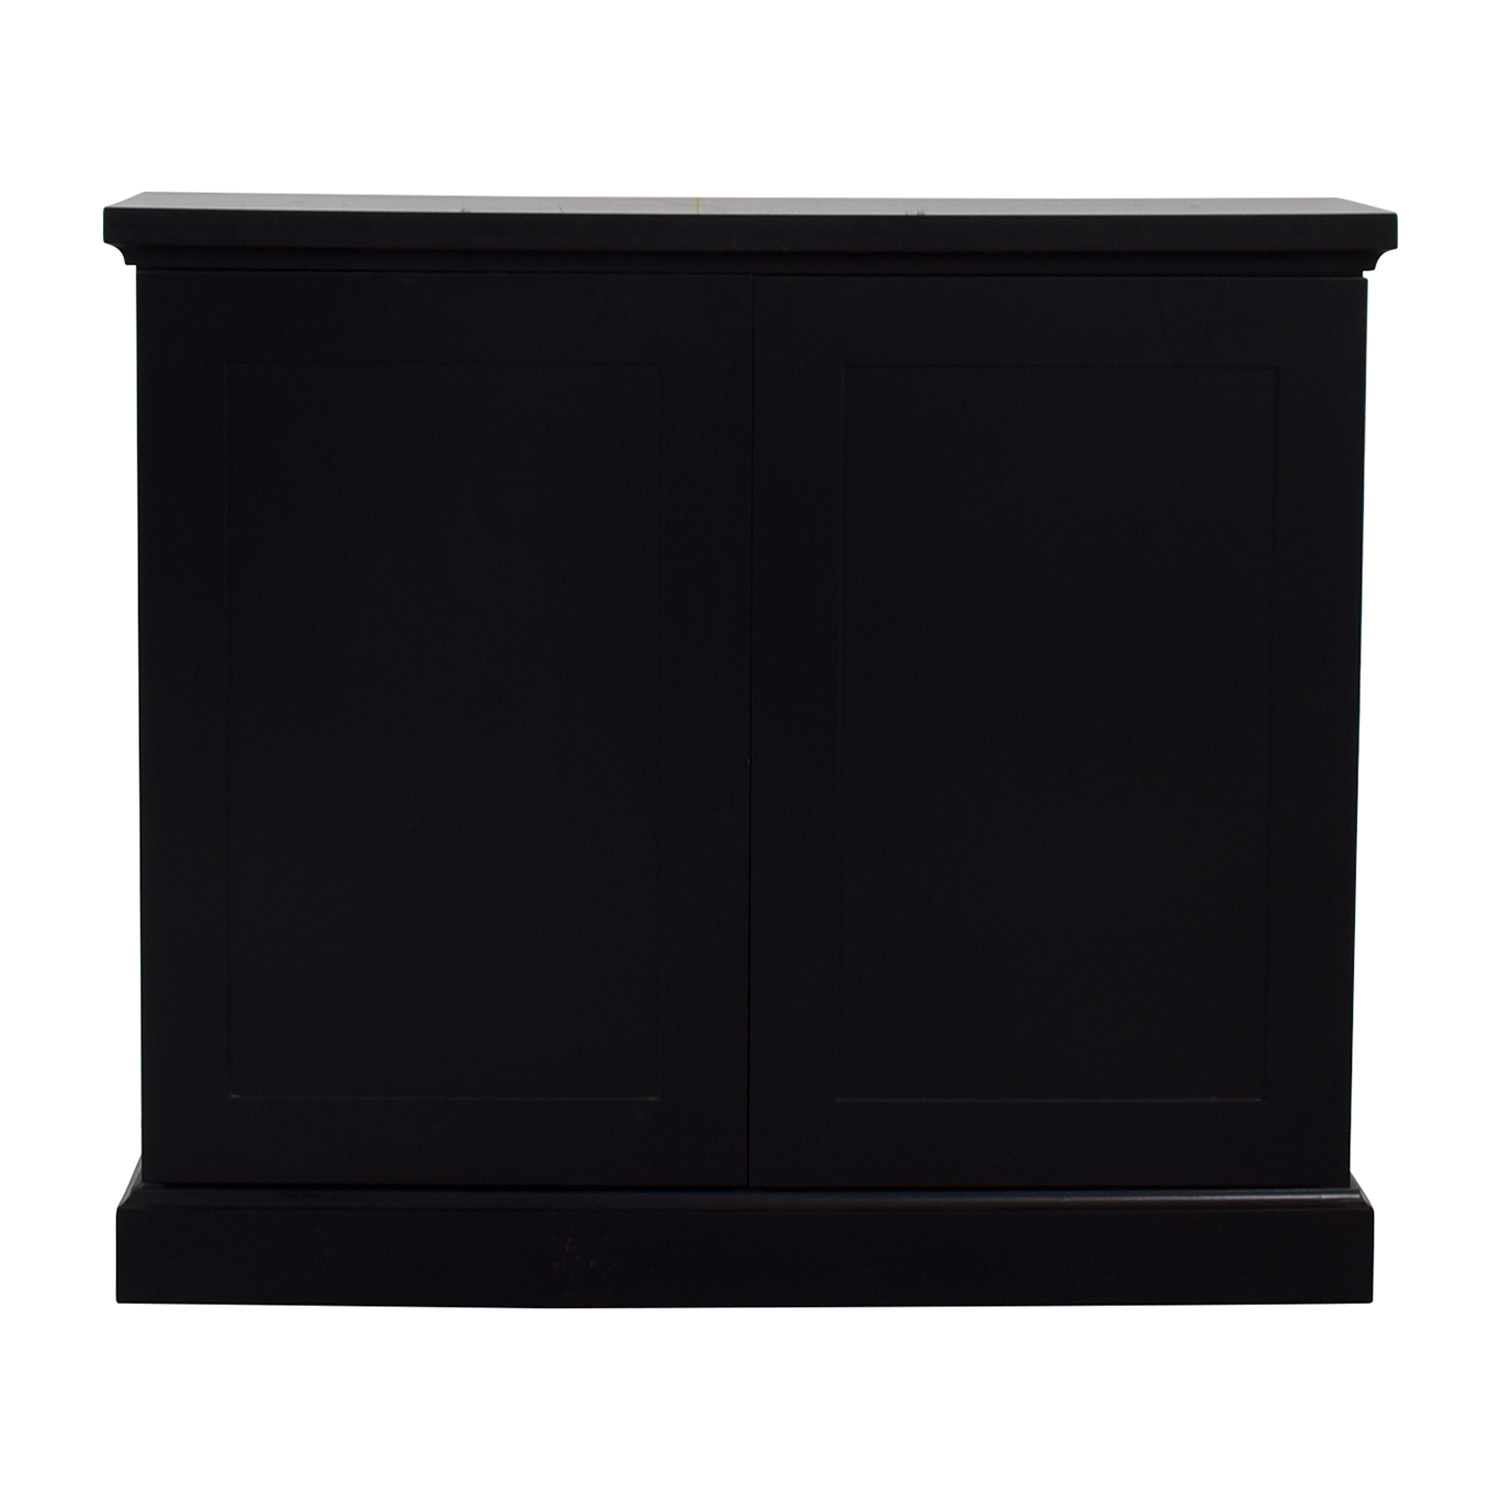 Black Ebonized Wood Two-Door Cabinets / Cabinets & Sideboards